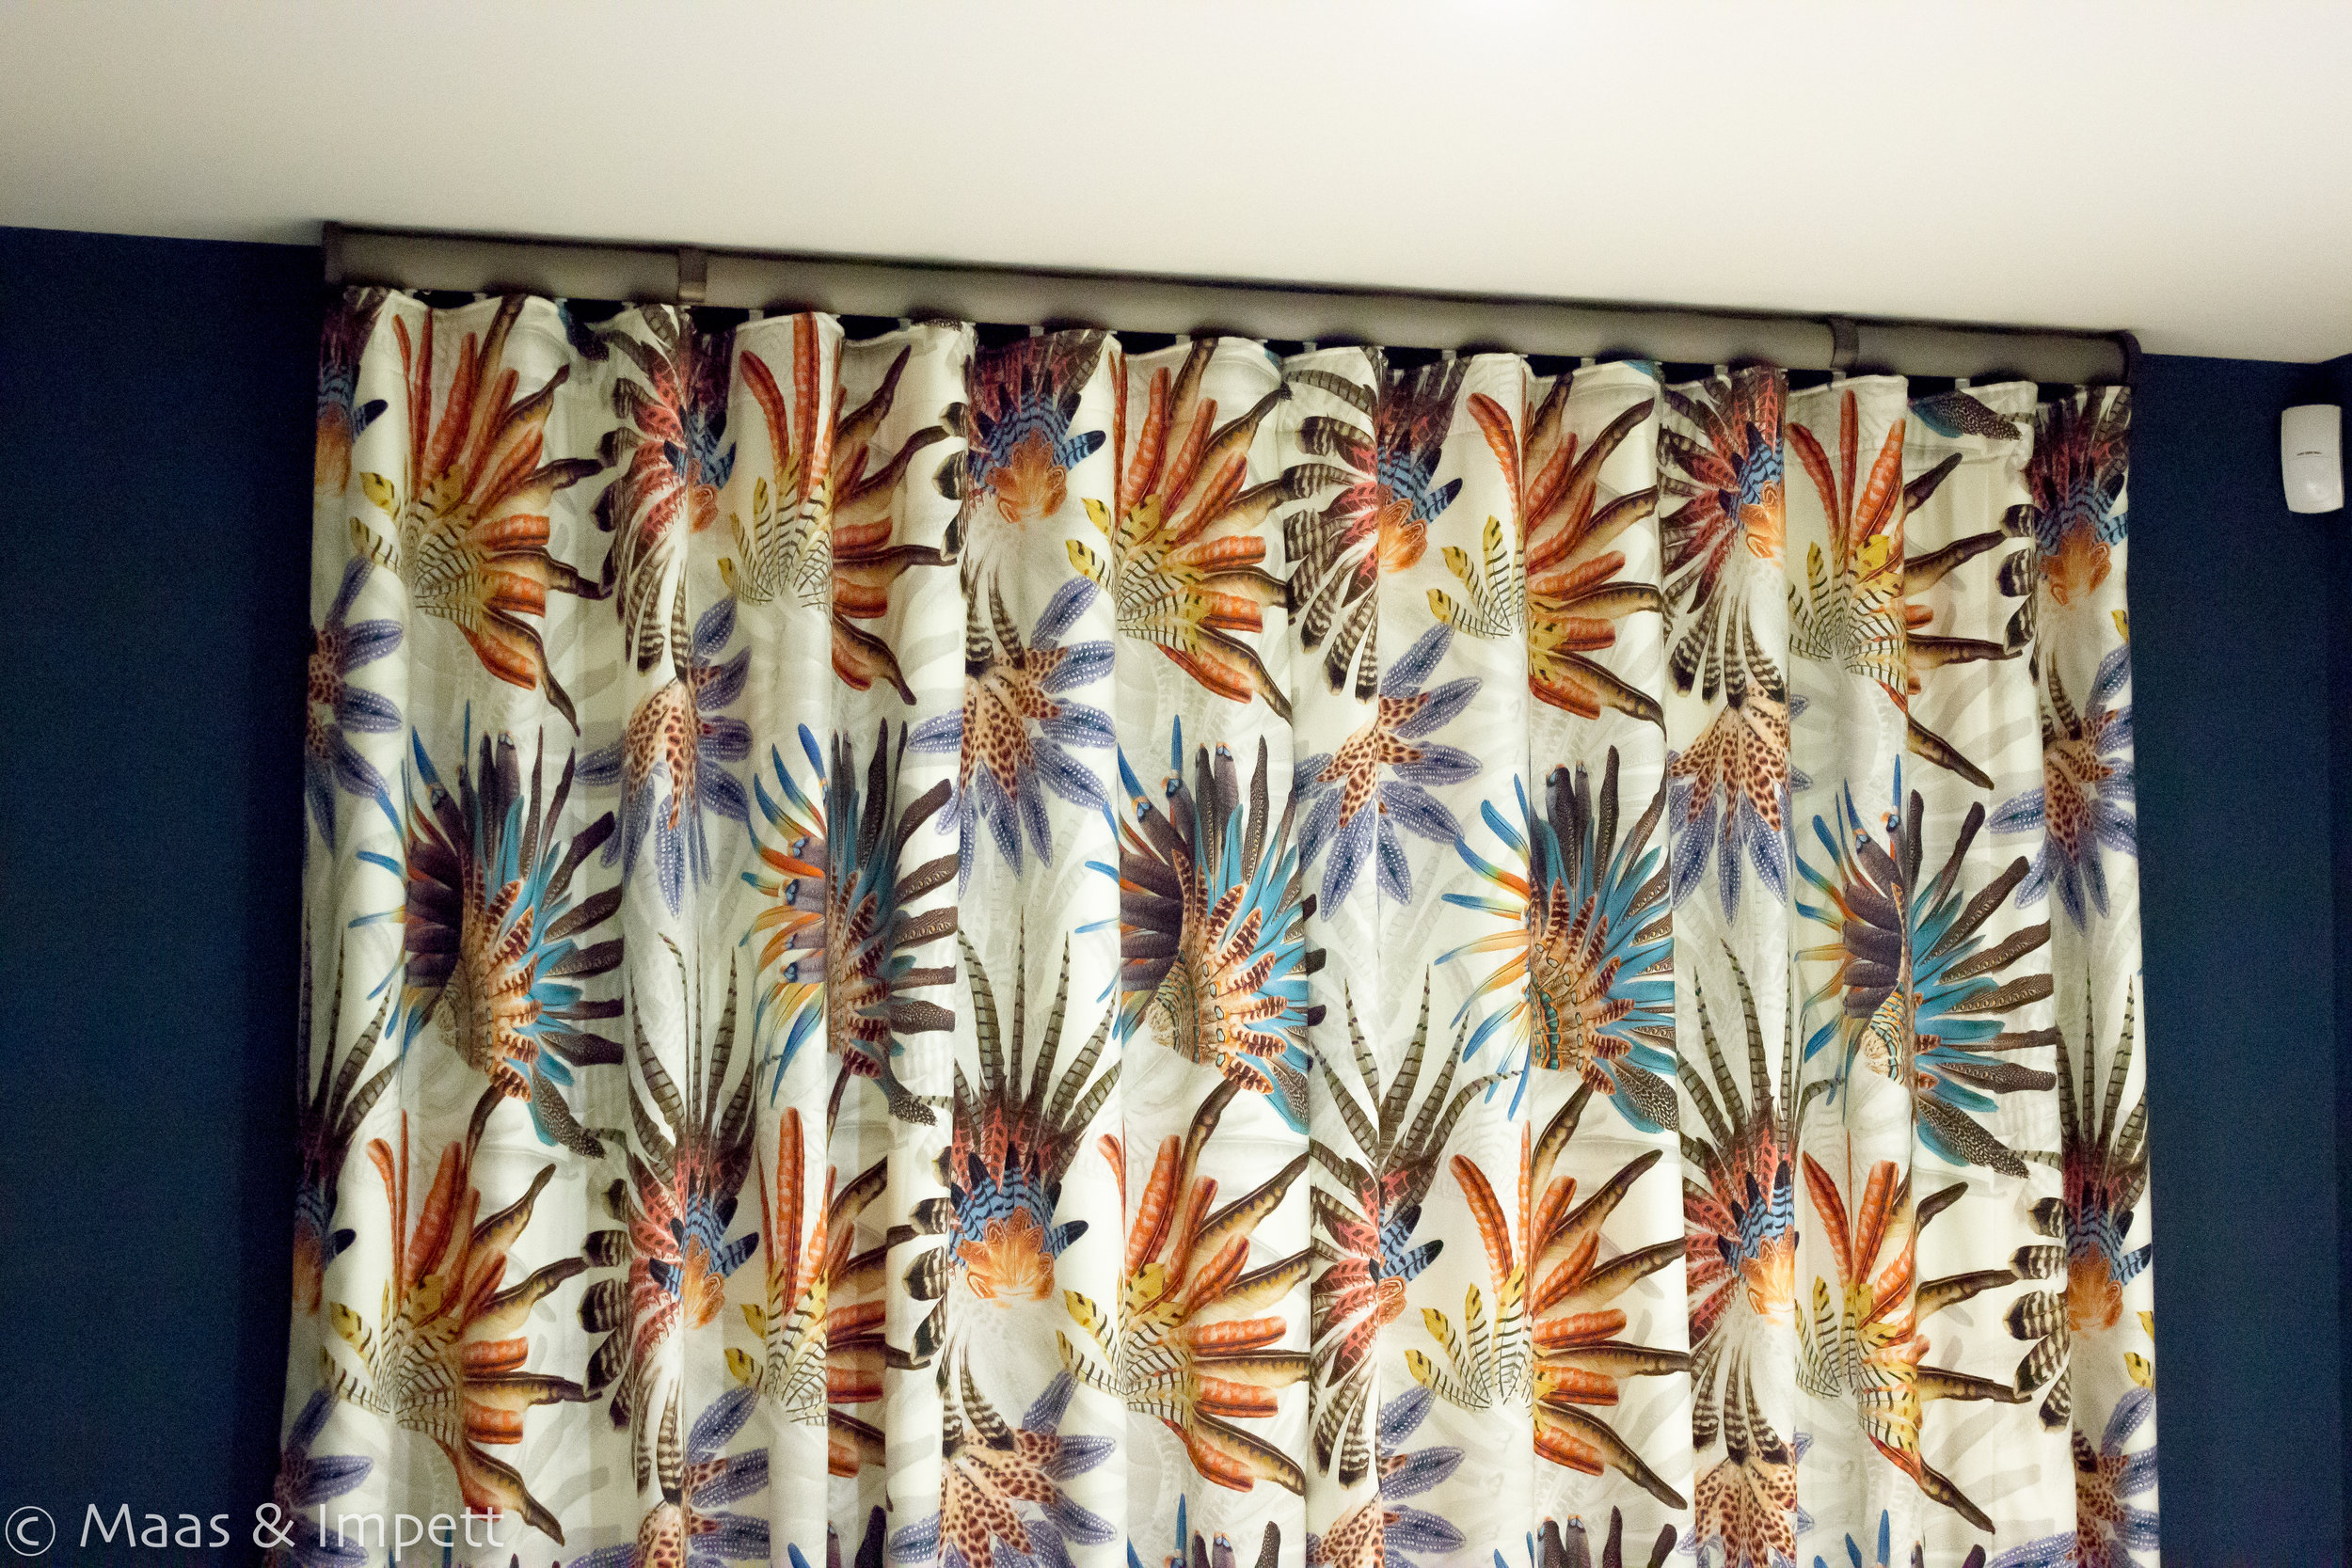 Curtains created by Maas & Impett